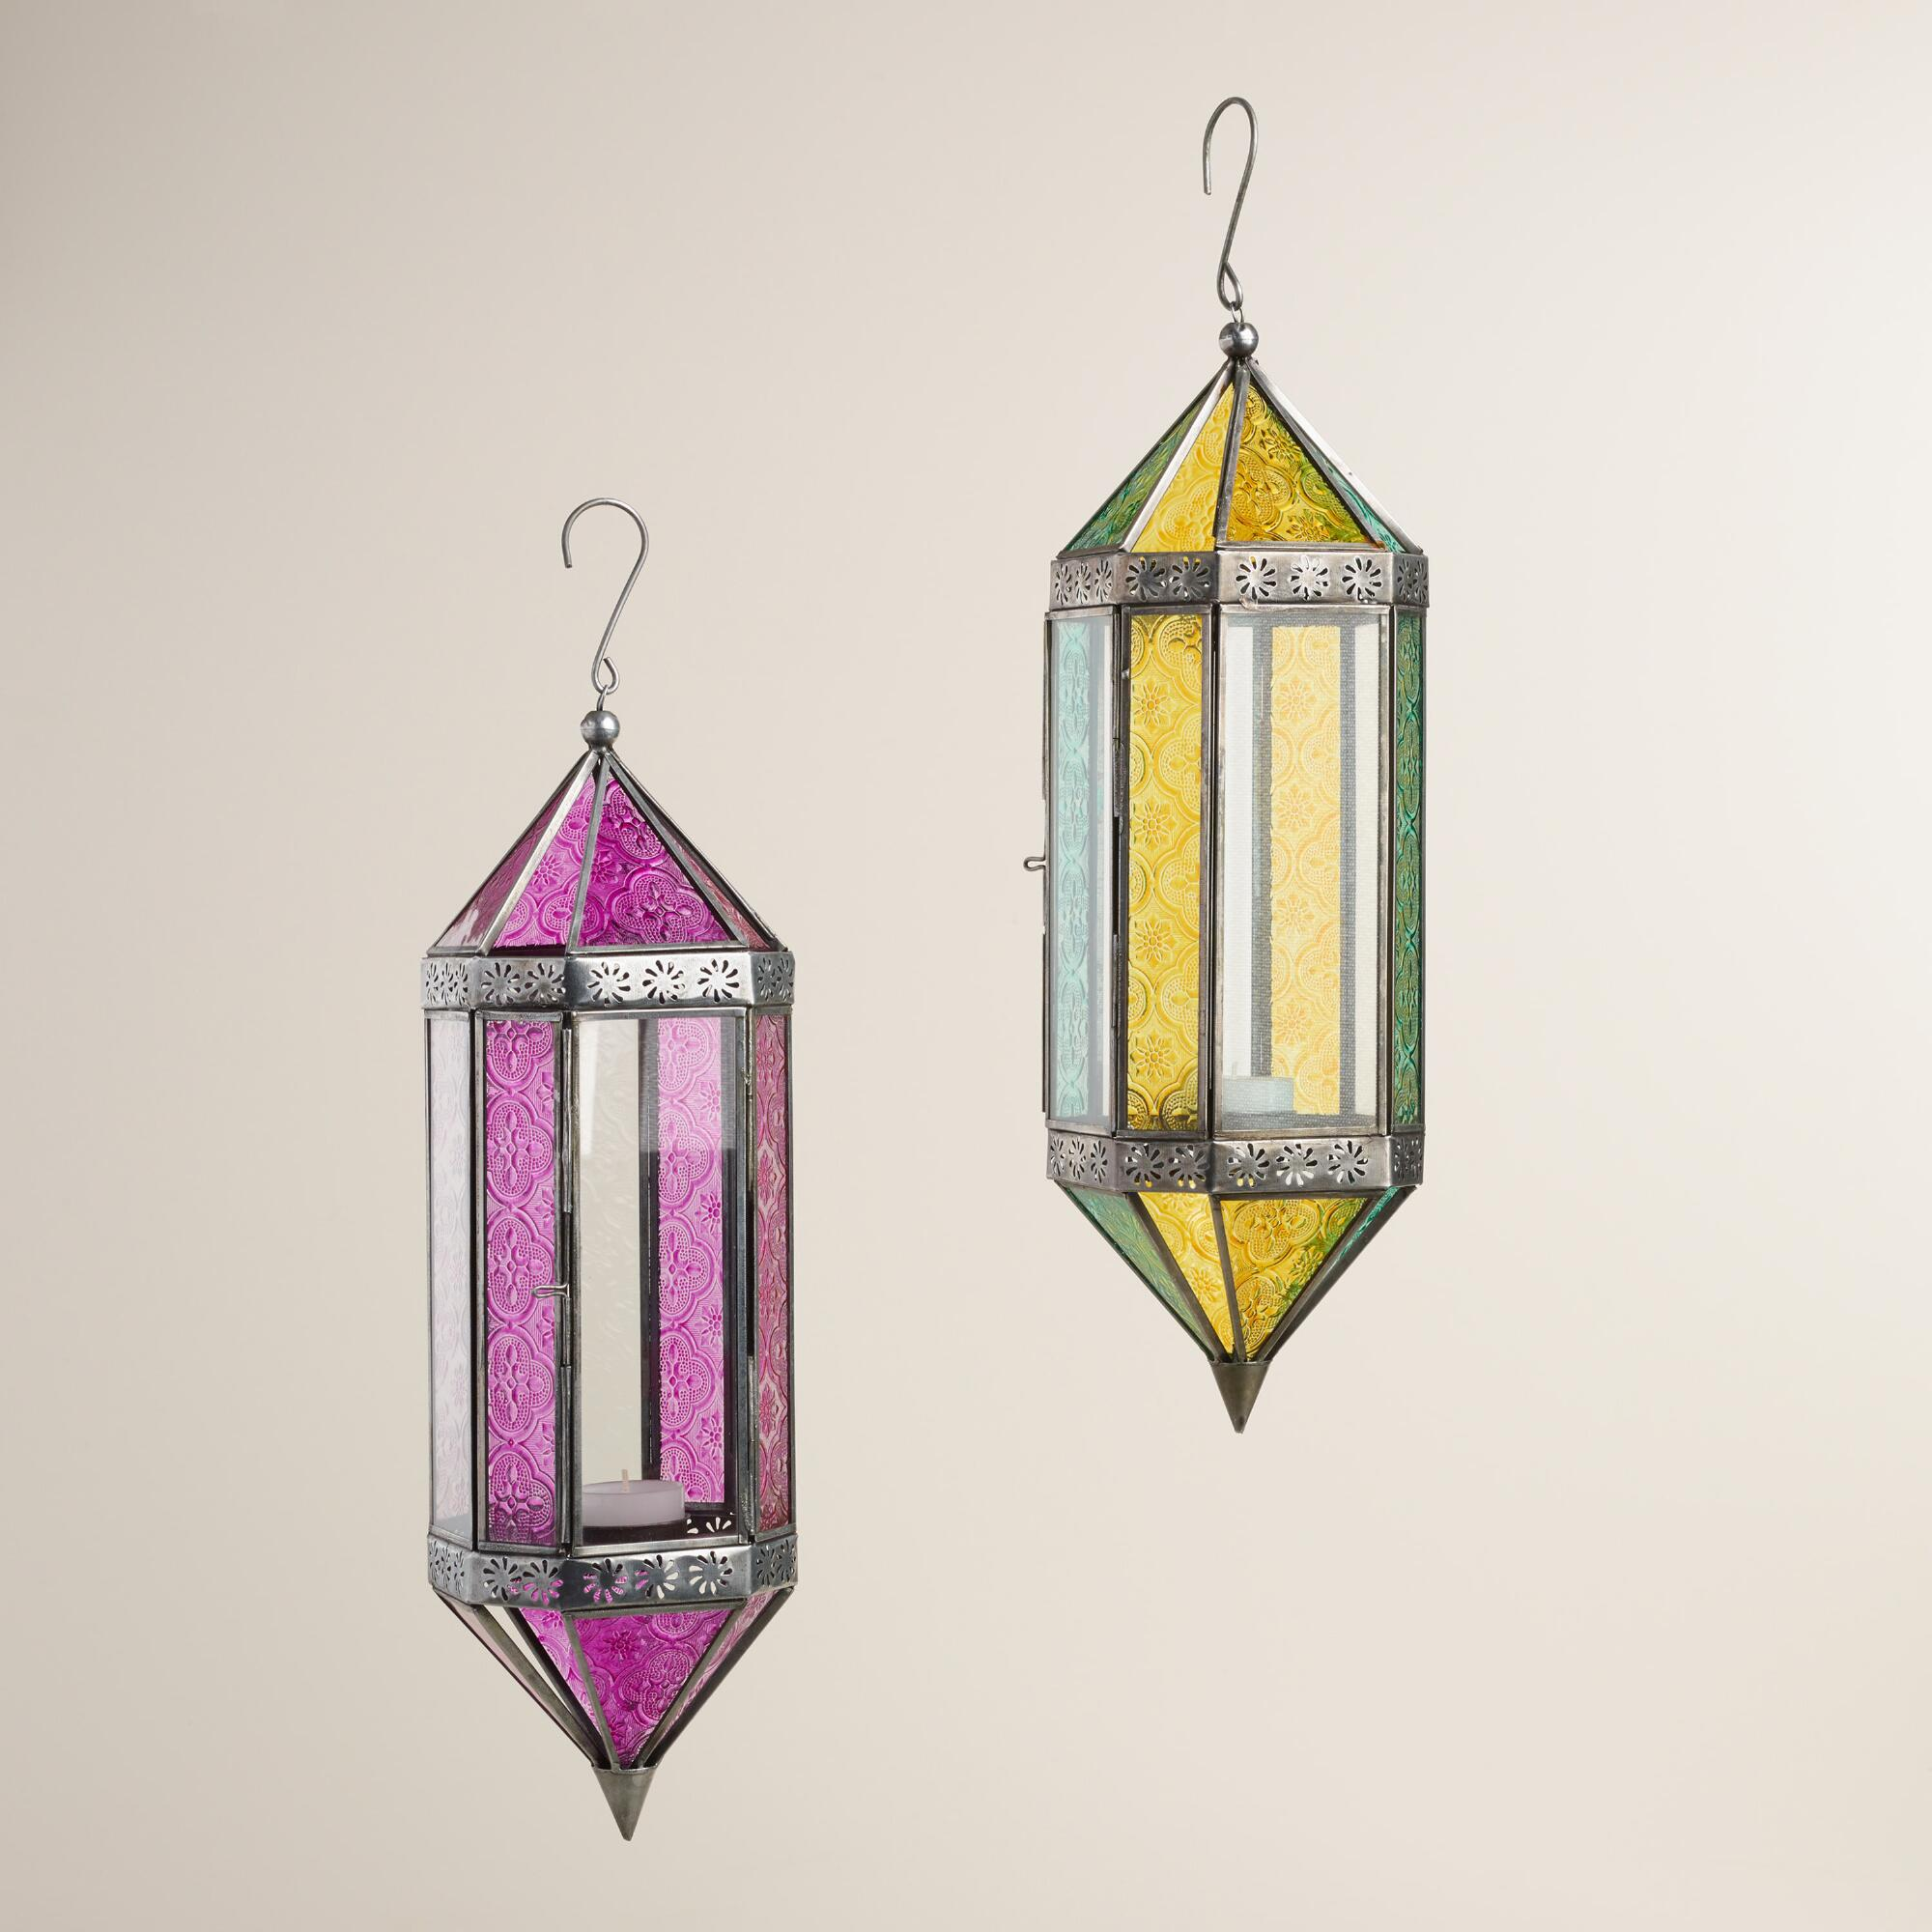 Find great deals on eBay for colored glass lantern. Shop with confidence.